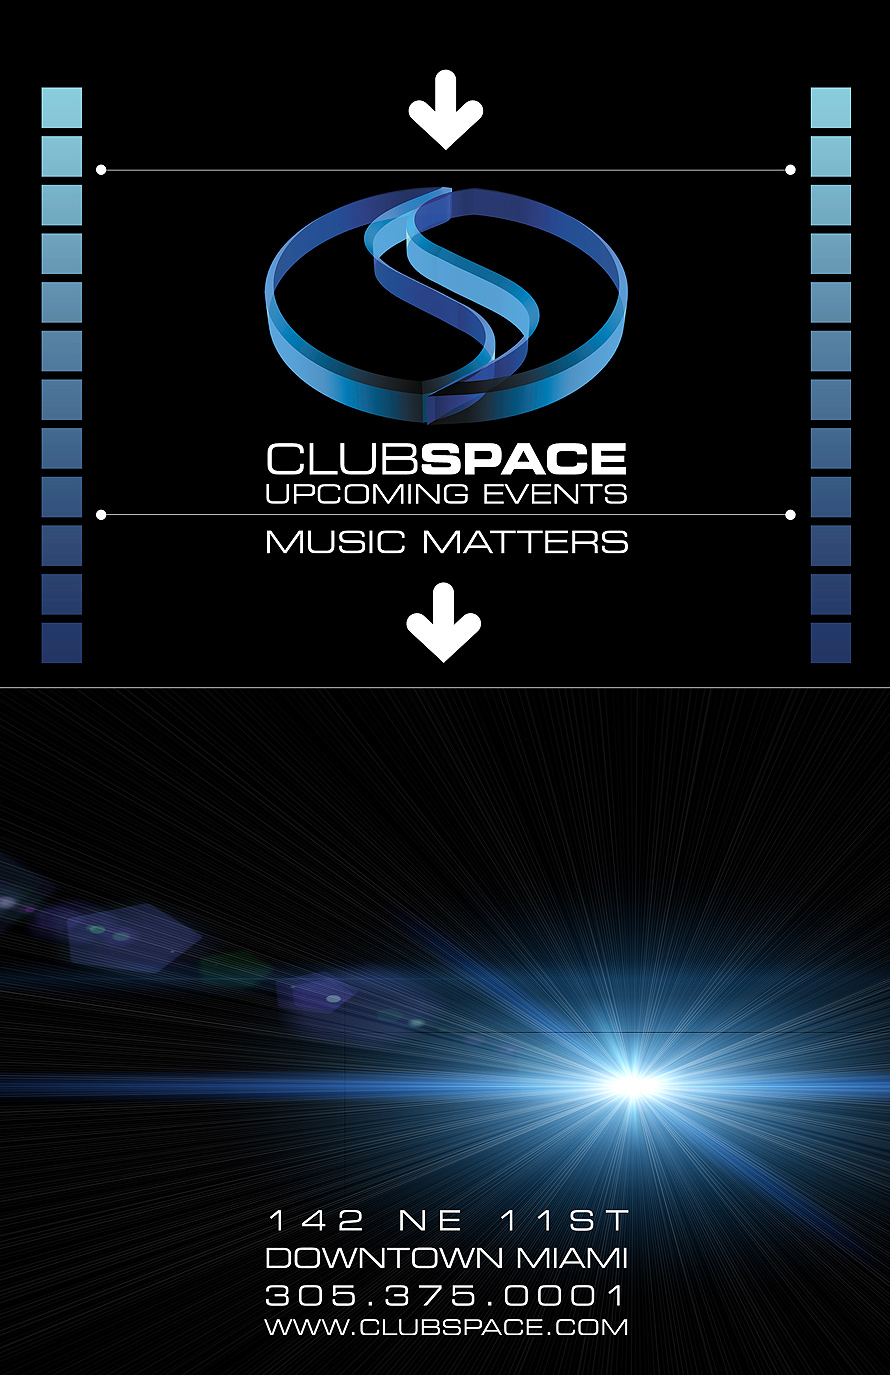 Club Space Upcoming Events Schedule November